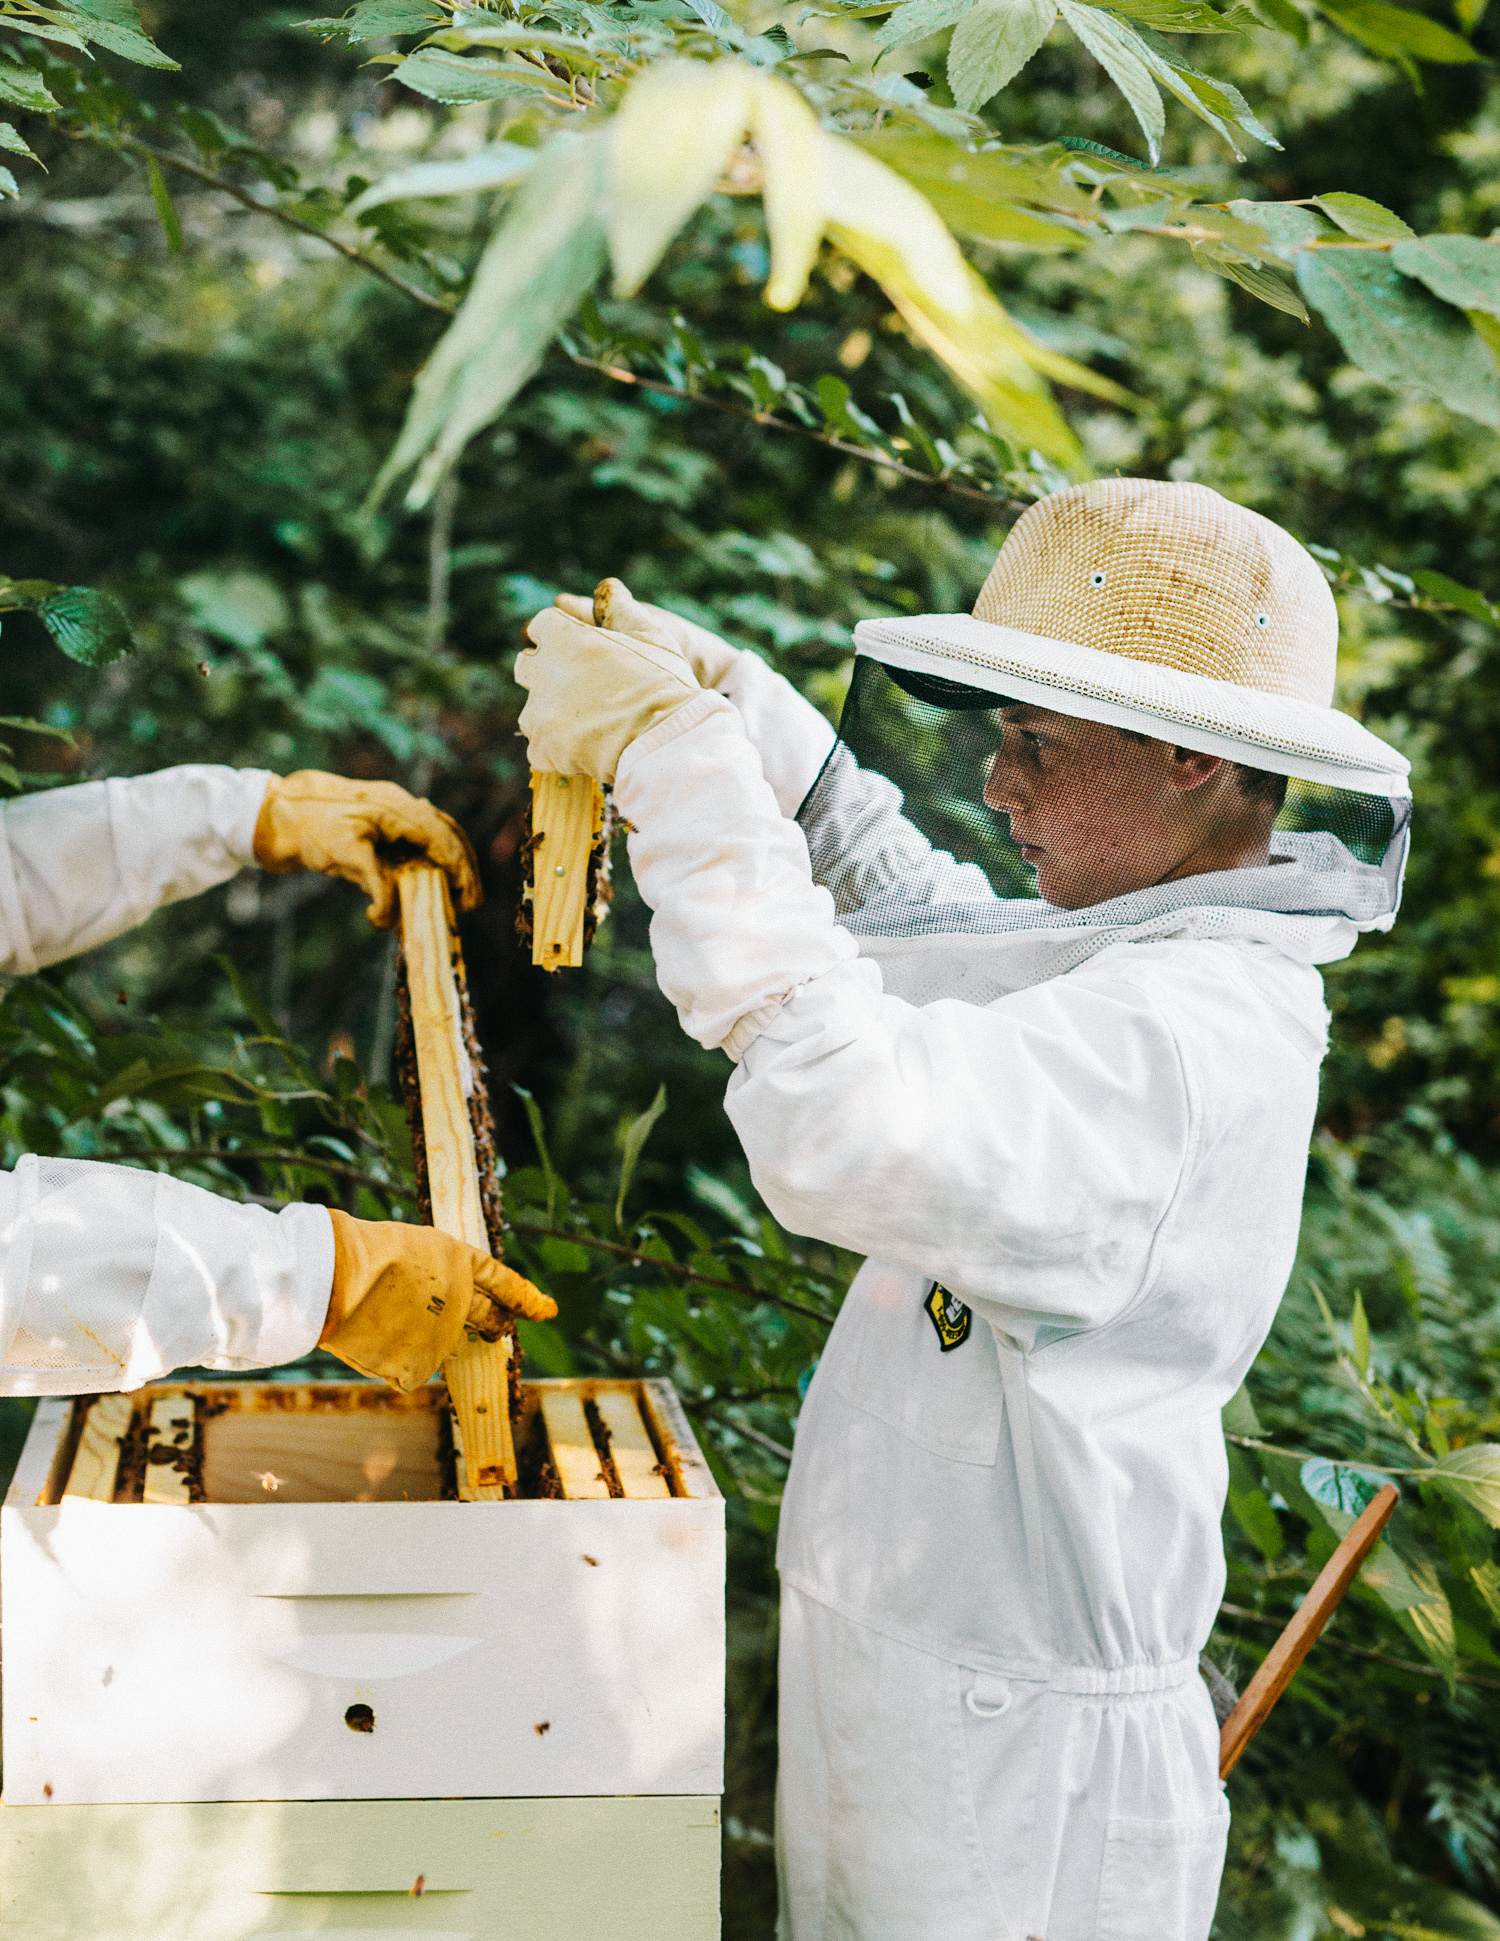 Beekeeper photographed by Adam DeTour